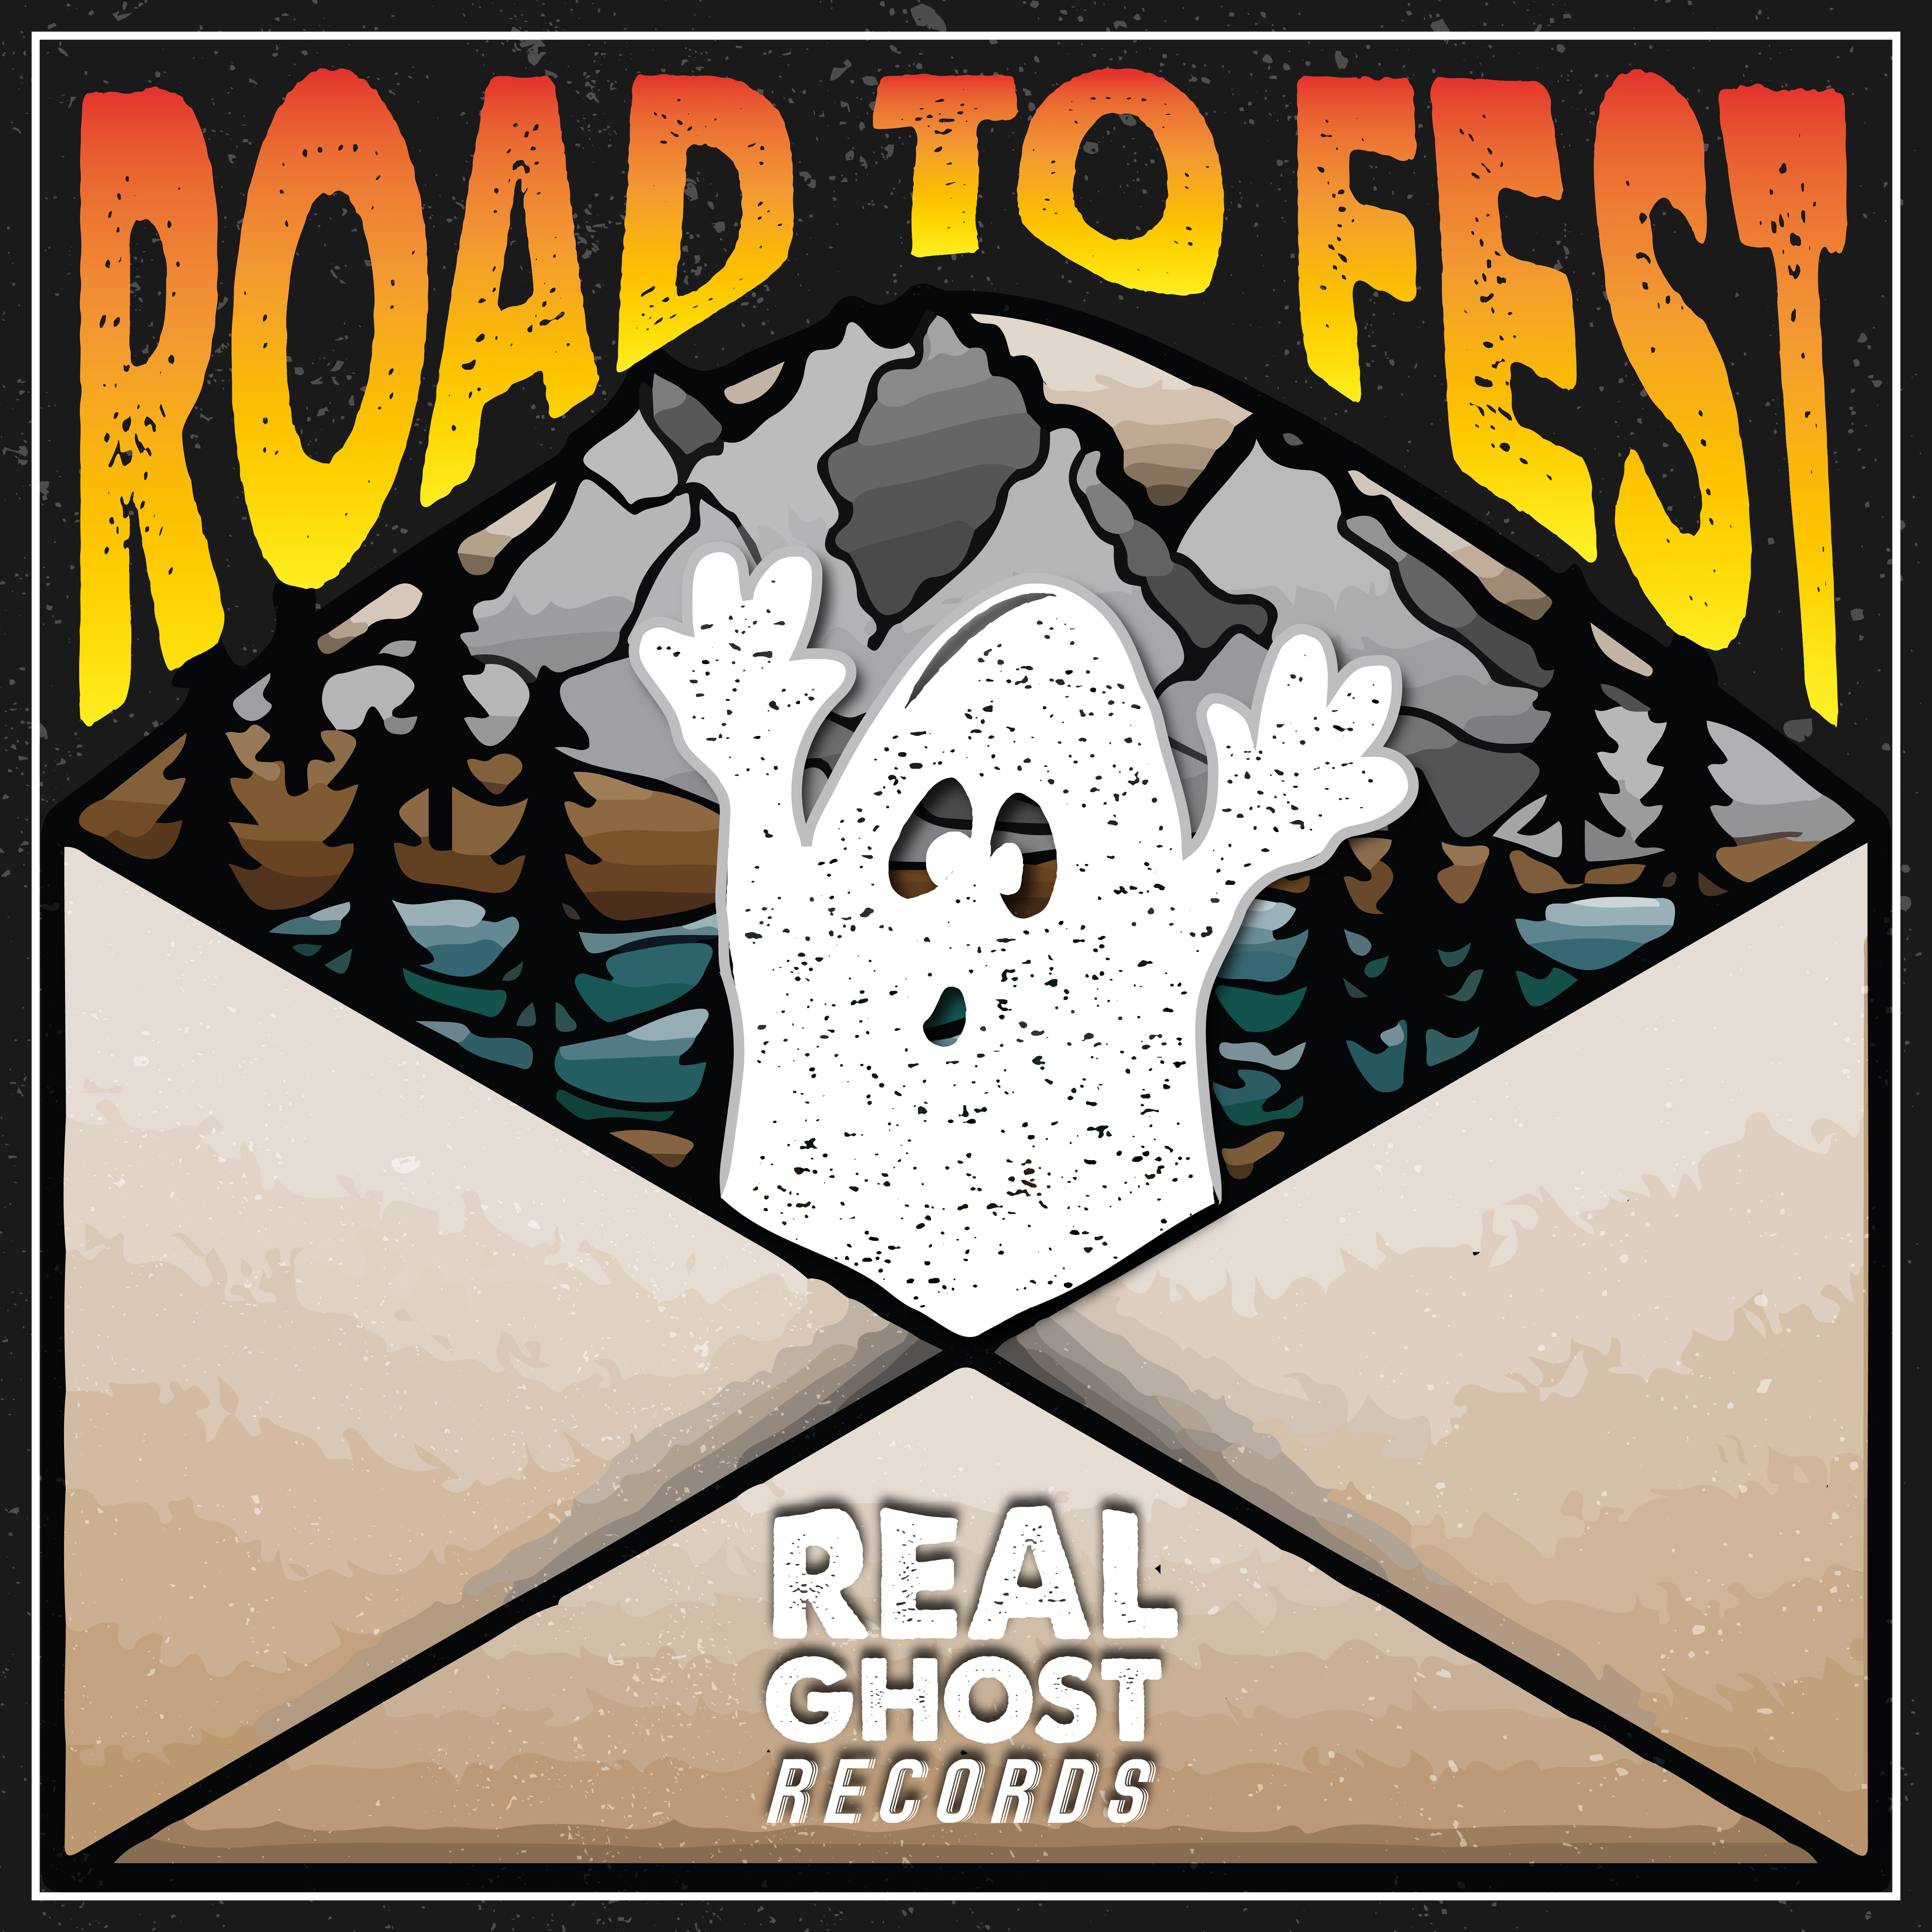 Real Ghost Records Road To Fest